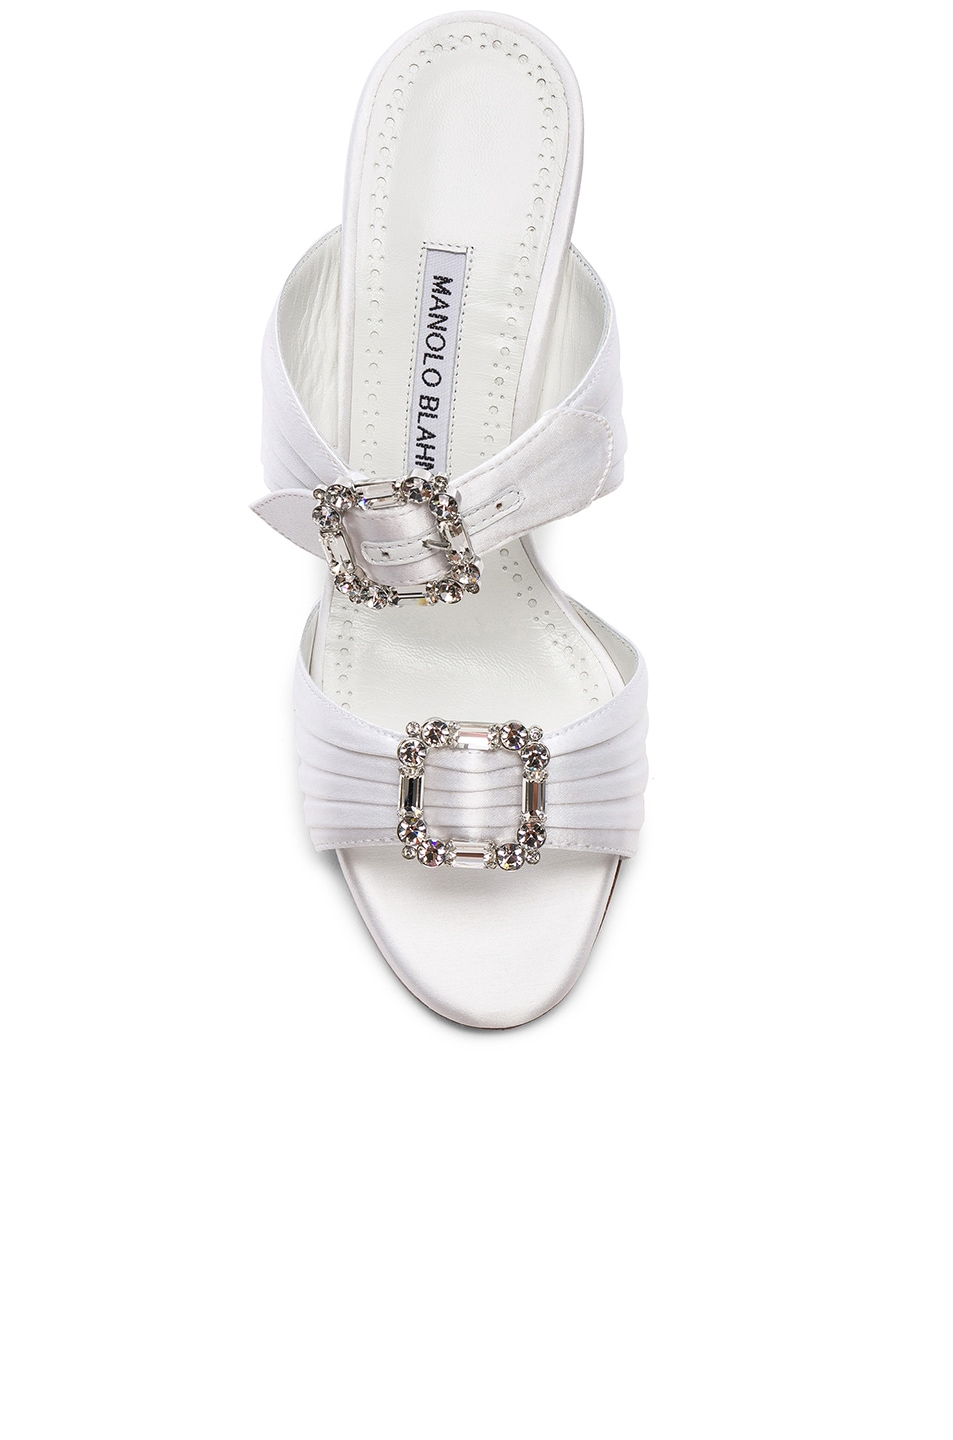 Image 4 of Manolo Blahnik Satin Pow 105 Sandals in White